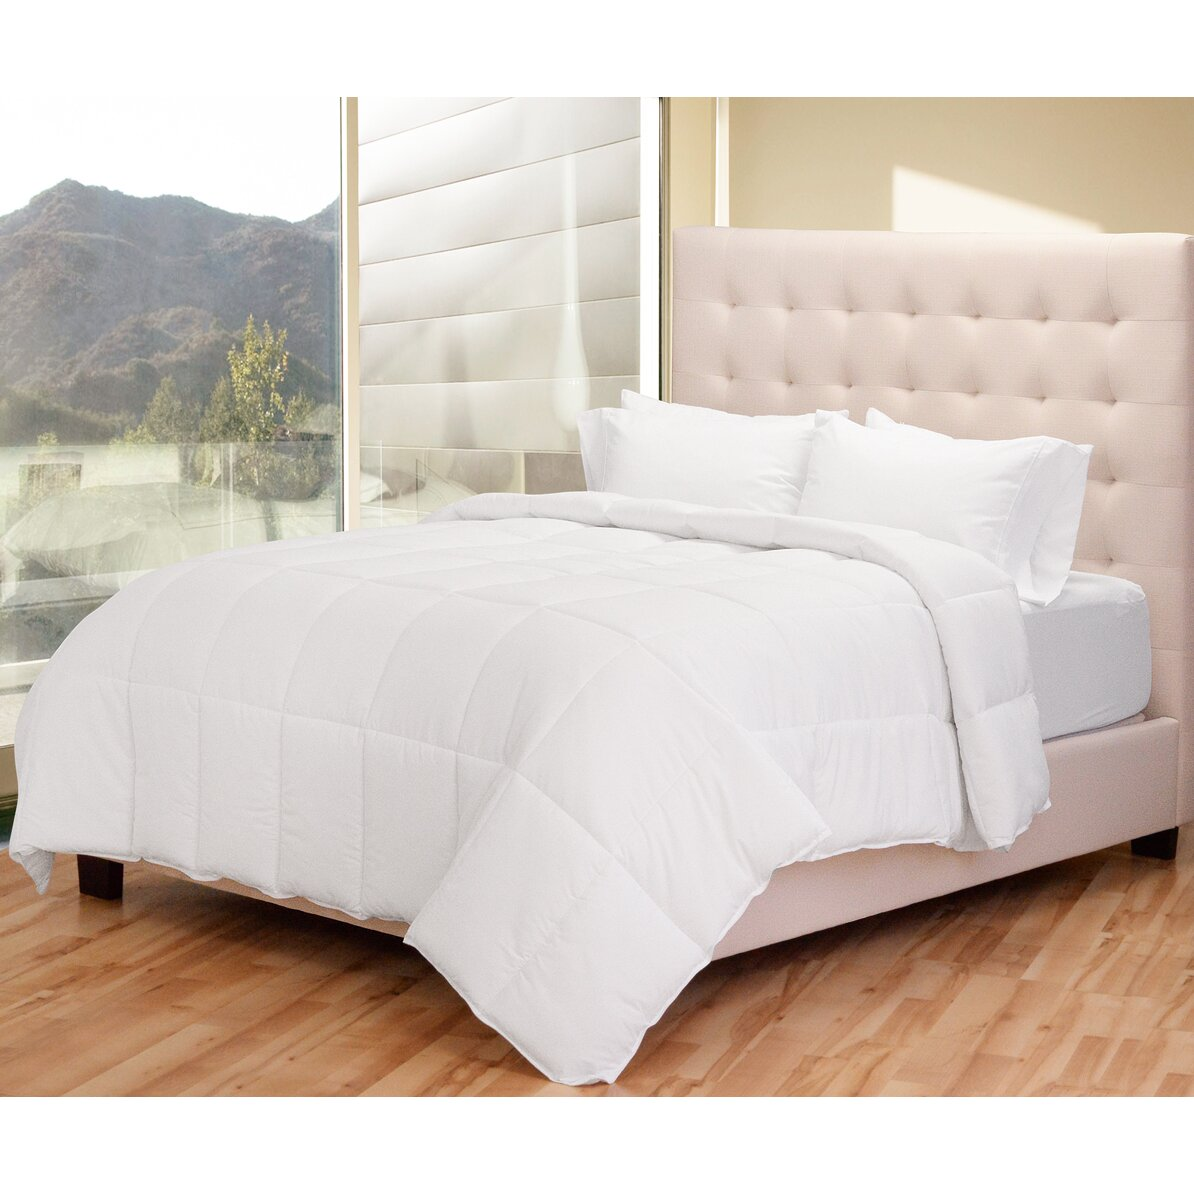 Bare Home Premium All Season Down Alternative Comforter